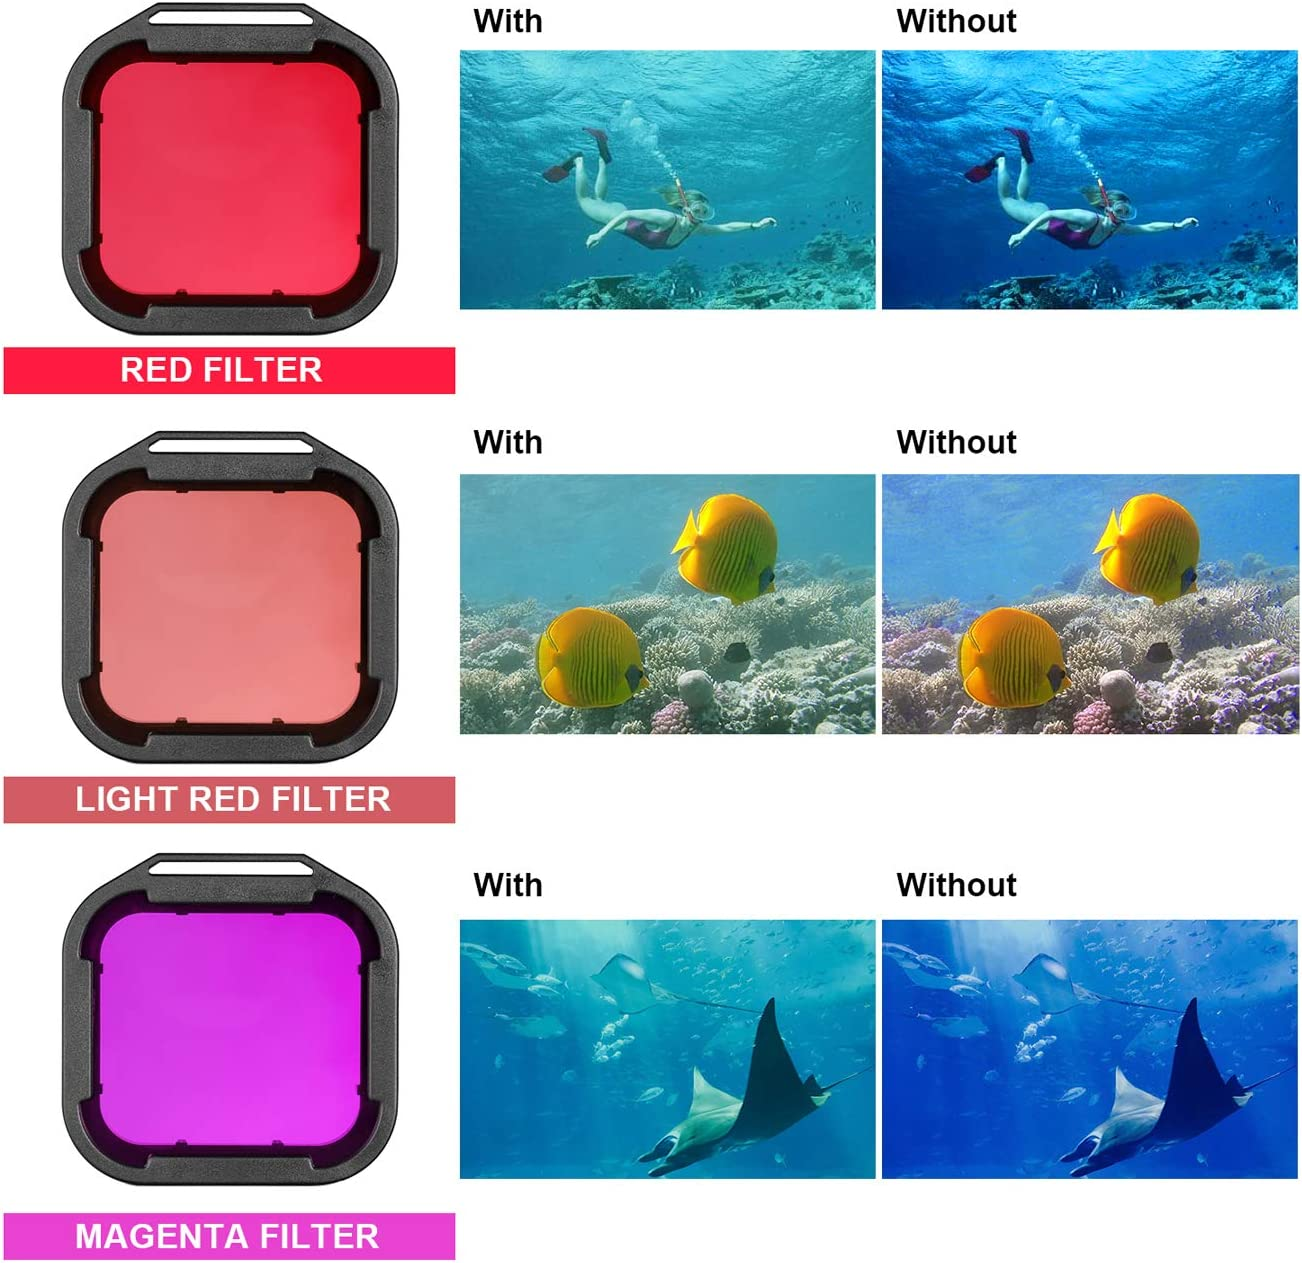 Red//Light Red//Magenta//Yellow Snorkel Filters Compatible with GoPro Official Waterproof Housing 4Pcs Dive Filters for GoPro Hero 5 Hero 6 /& Hero 7 Black